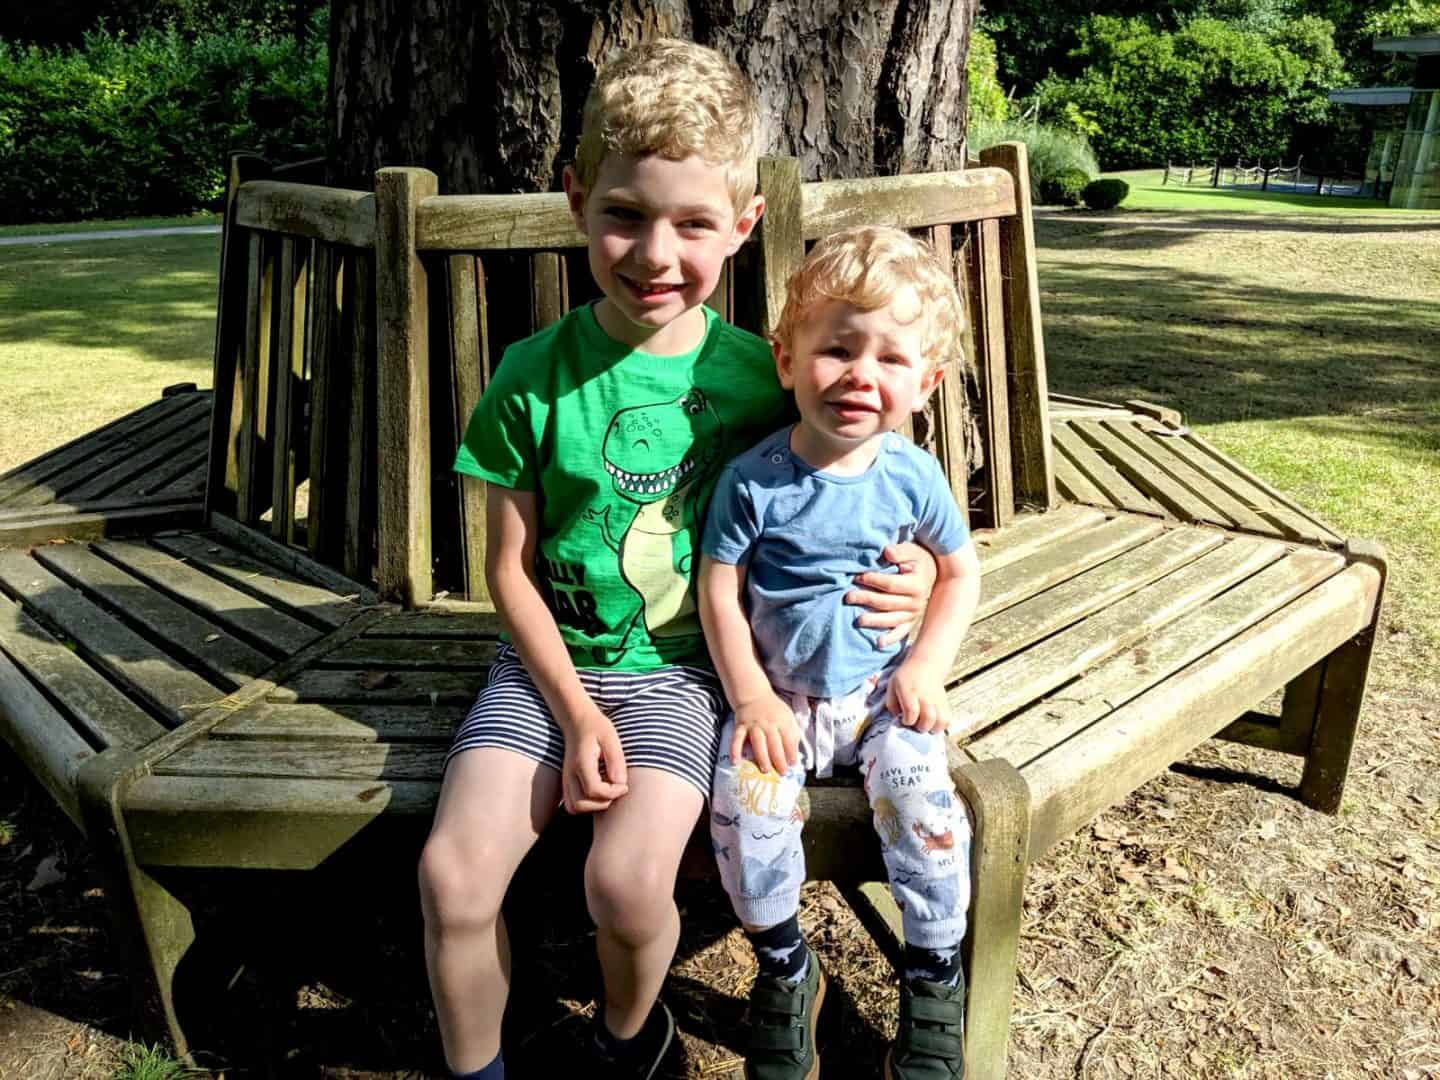 Shilton Boys Siblings July 2019